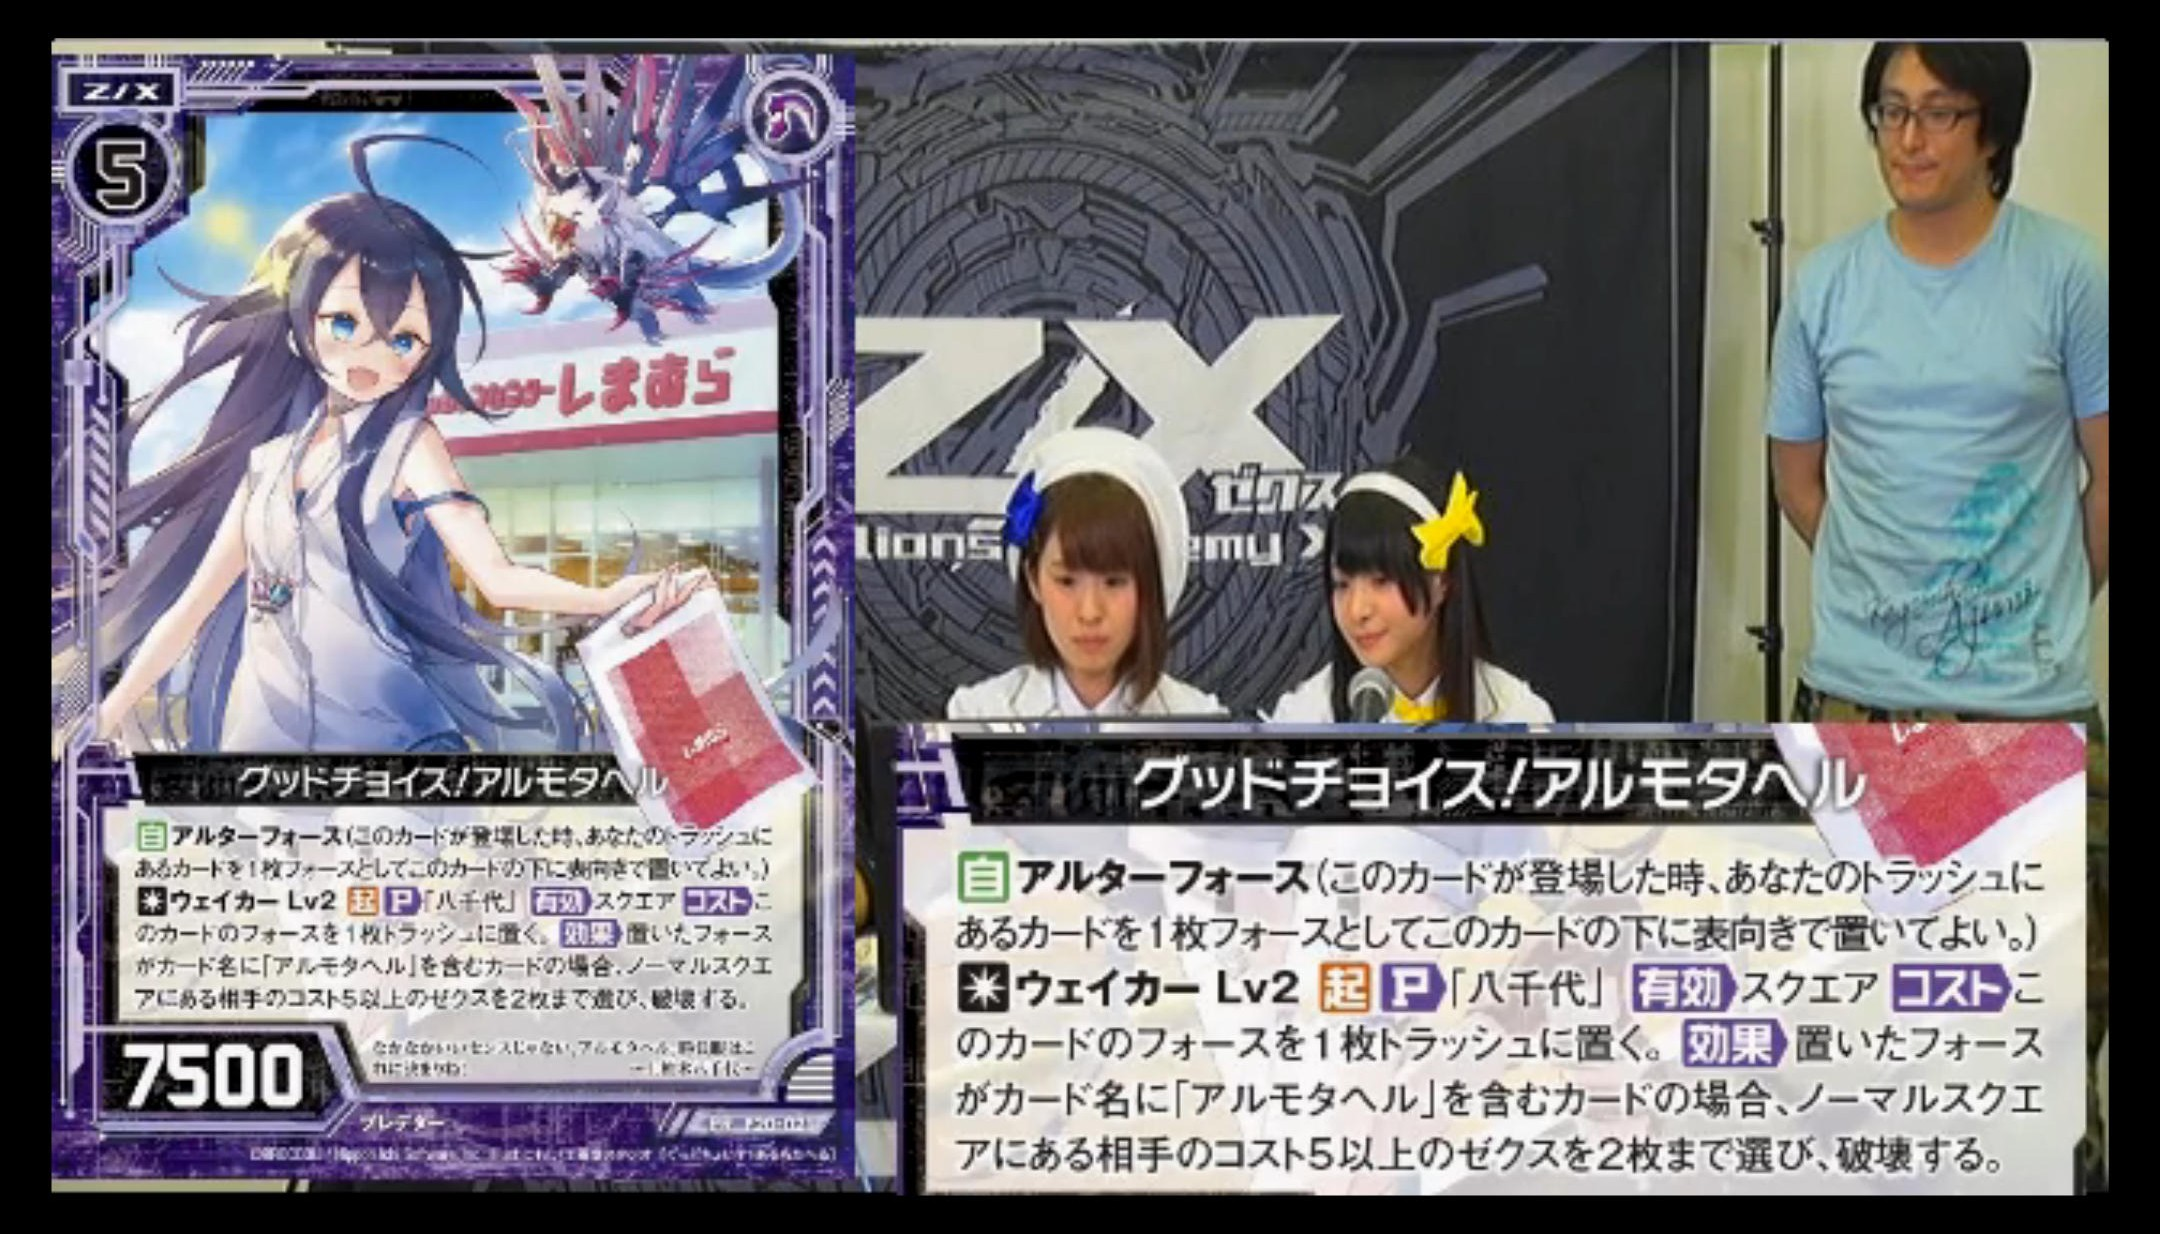 zx-ignition-broadcast-1700510-103.jpg